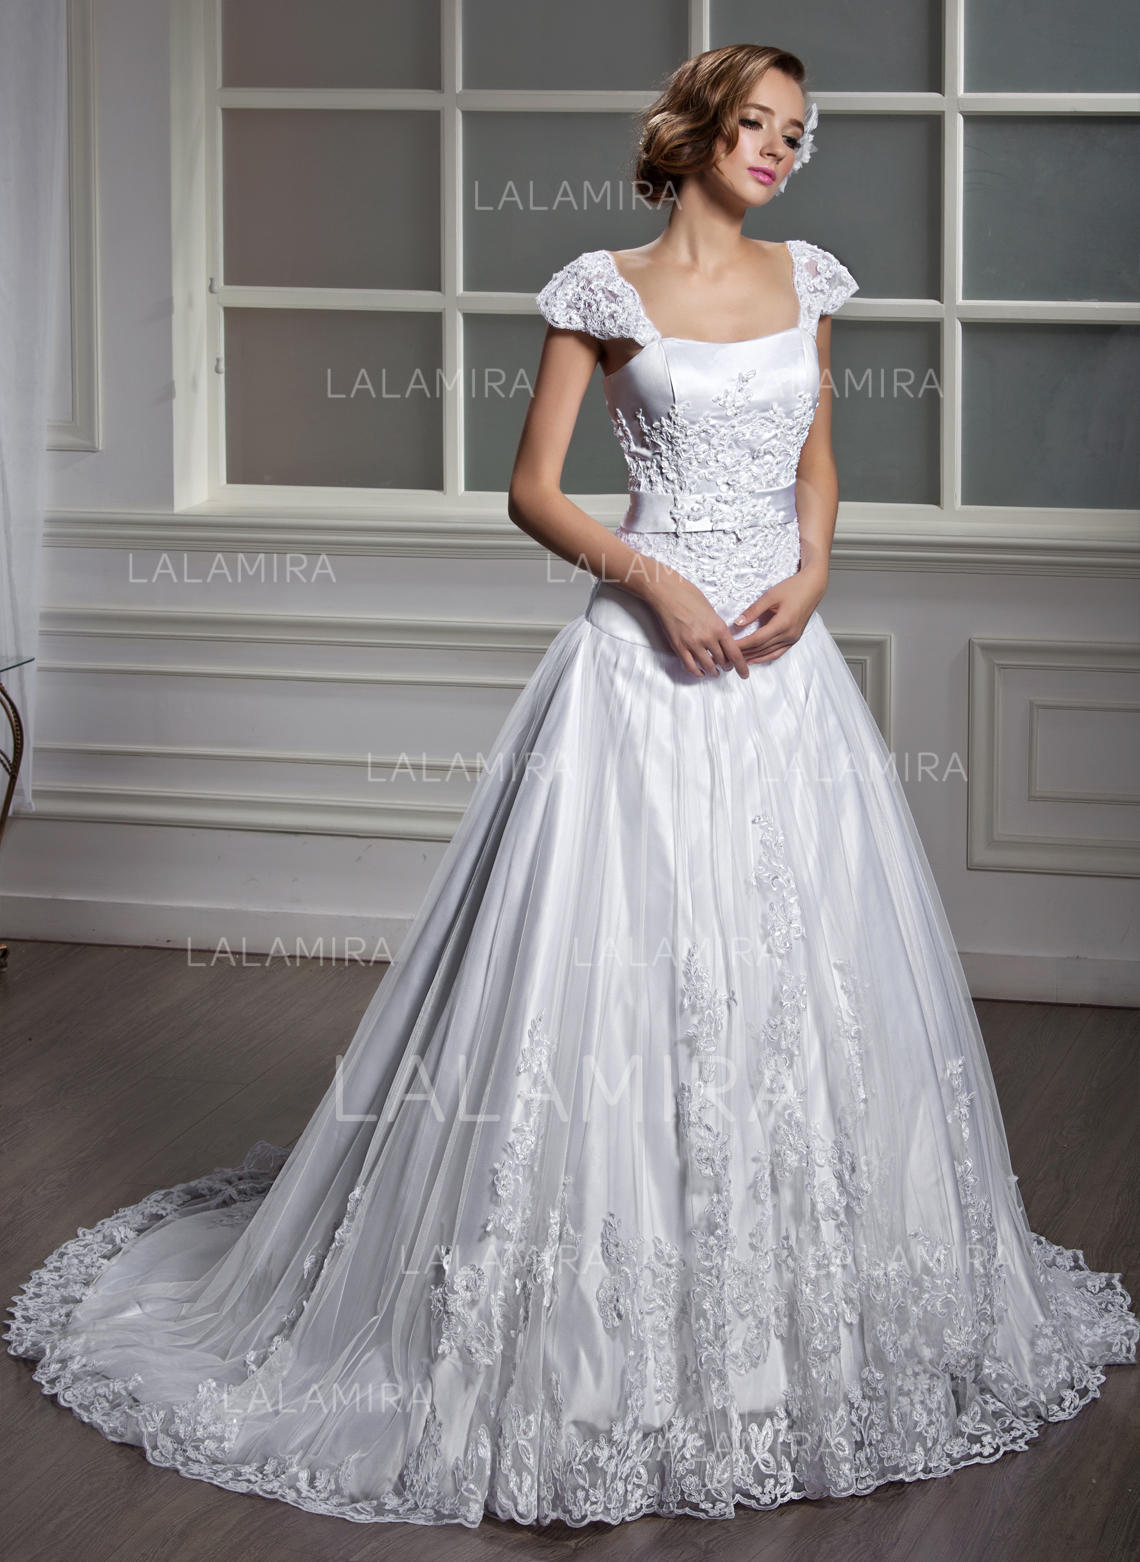 9a4d97cf3c5 Chic Square A-Line Princess Wedding Dresses Court Train Tulle Short Sleeves  (002196871. Loading zoom